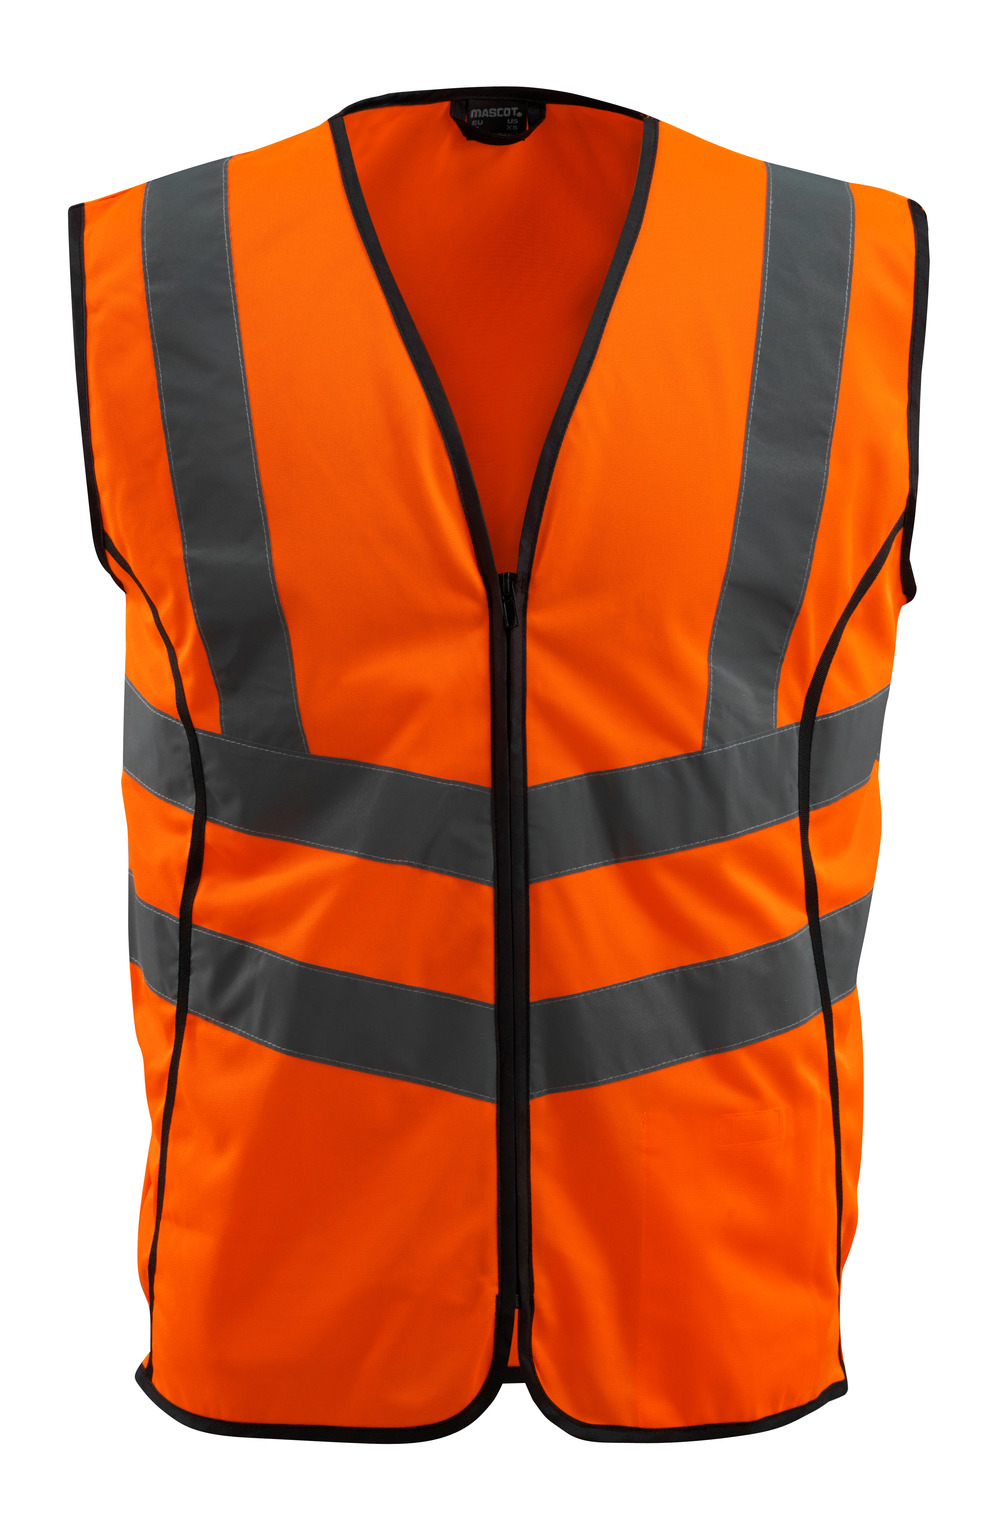 50145-977-14 Trafikväst - hi-vis orange